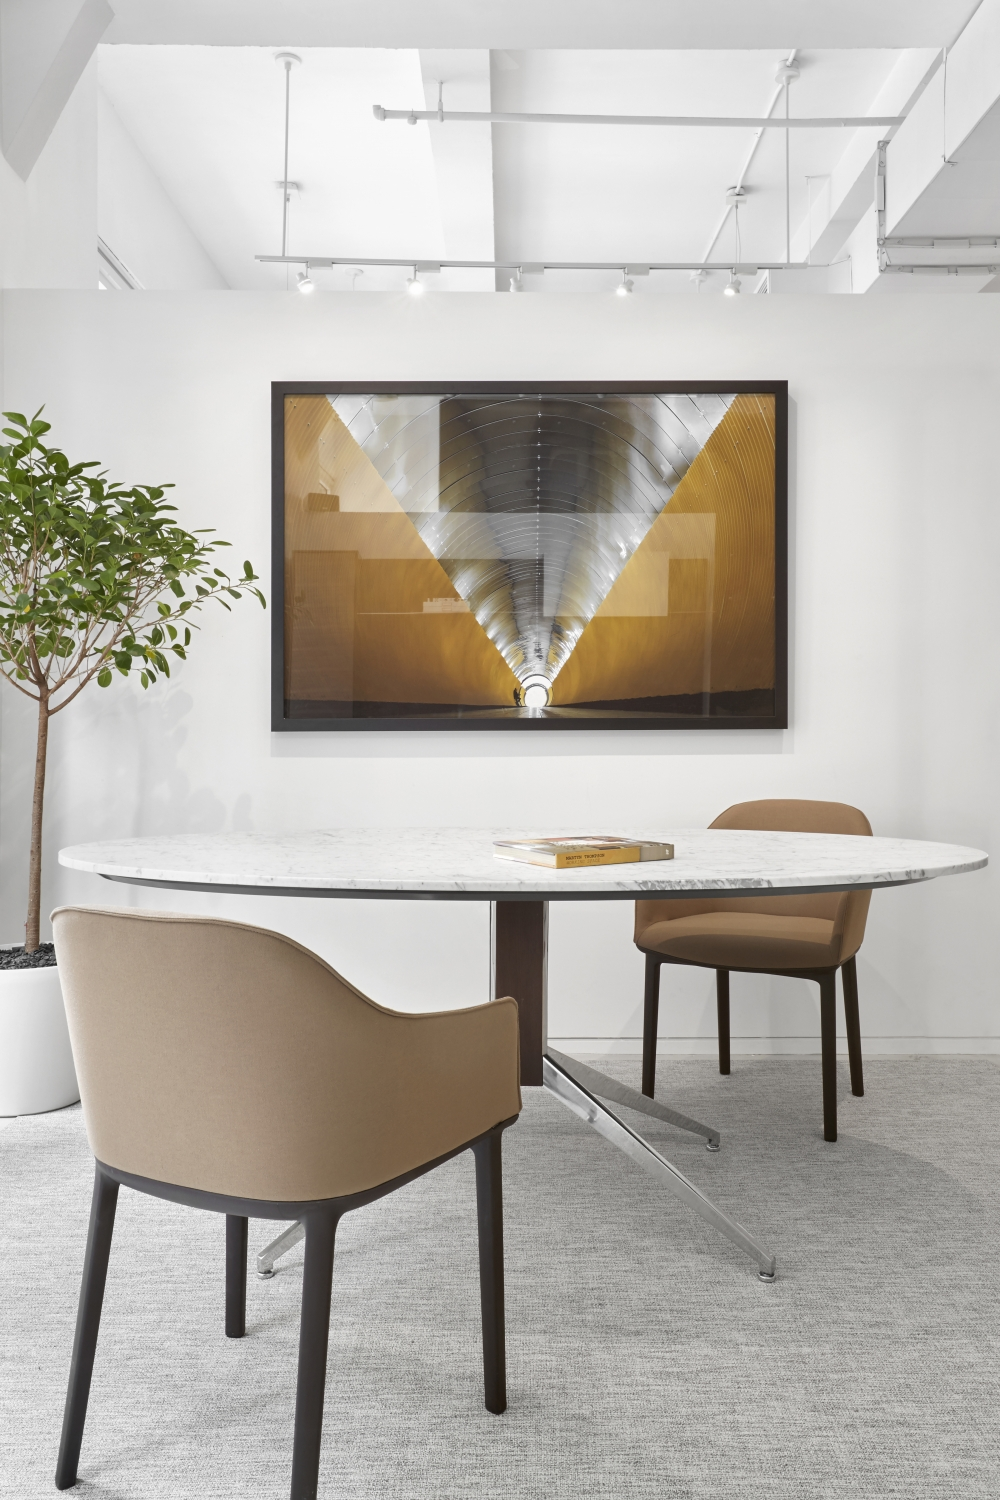 Preview of Merino | Meeting Table | Ellipse Stone Top | Polished Chrome Base